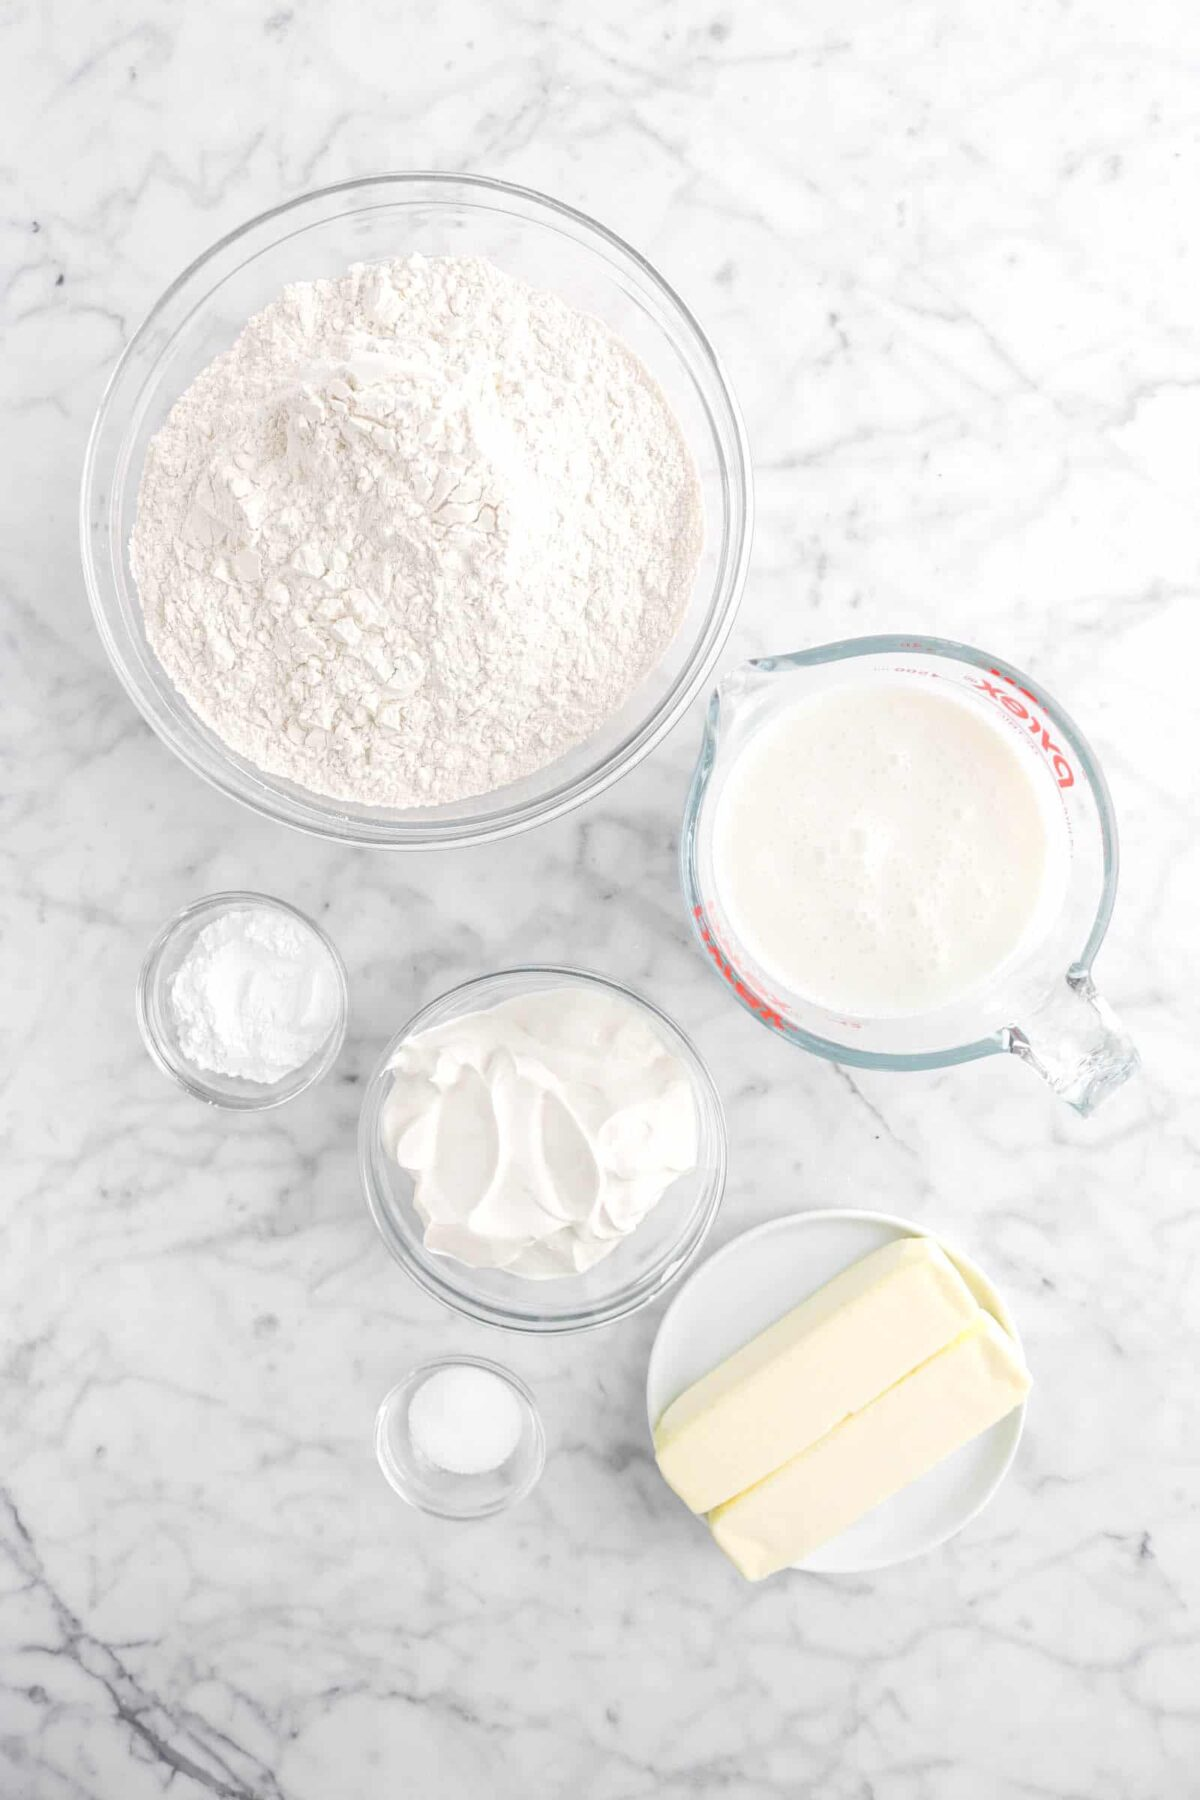 flour, buttermilk, baking powder, sour cream, salt, and two sticks of butter on marble counter